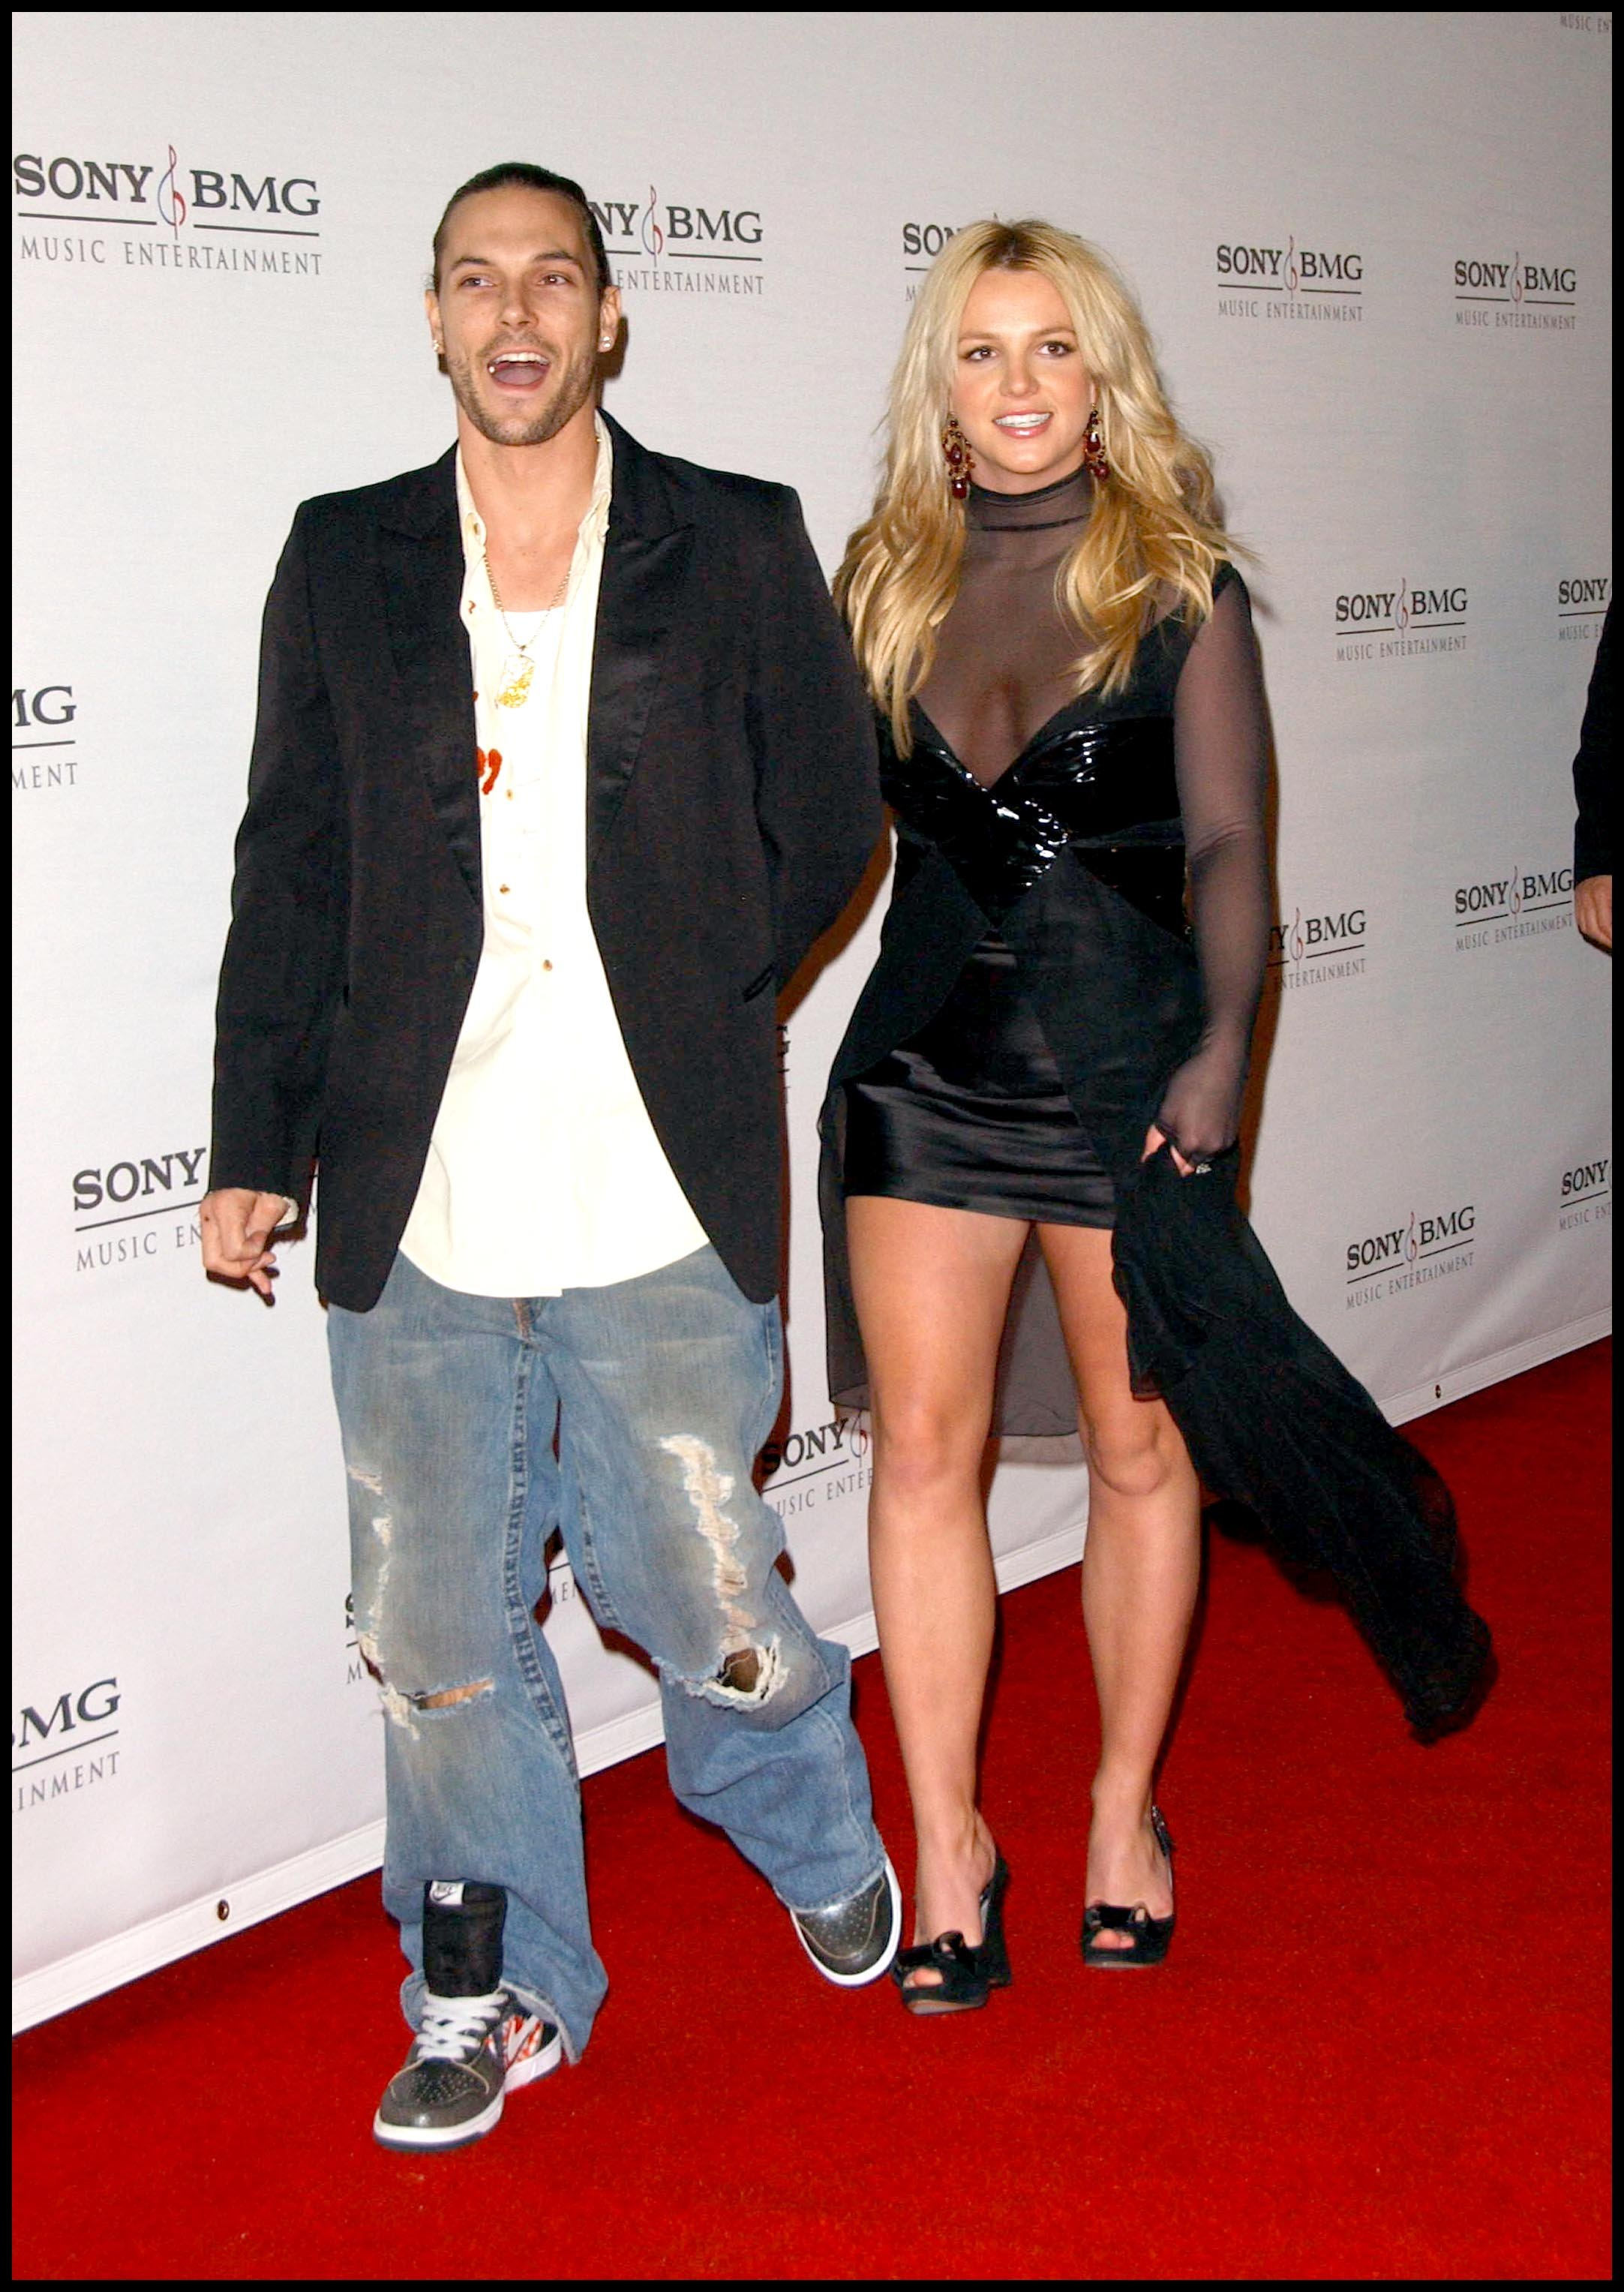 Singer BRITNEY SPEARS + husband KEVIN FEDERLINE @ the Sony/BMG post Grammy party held @ the Tropicana bar in the Rosevelt hotel., Image: 17822648, License: Rights-managed, Restrictions: , Model Release: no, Credit line: Profimedia, Visual